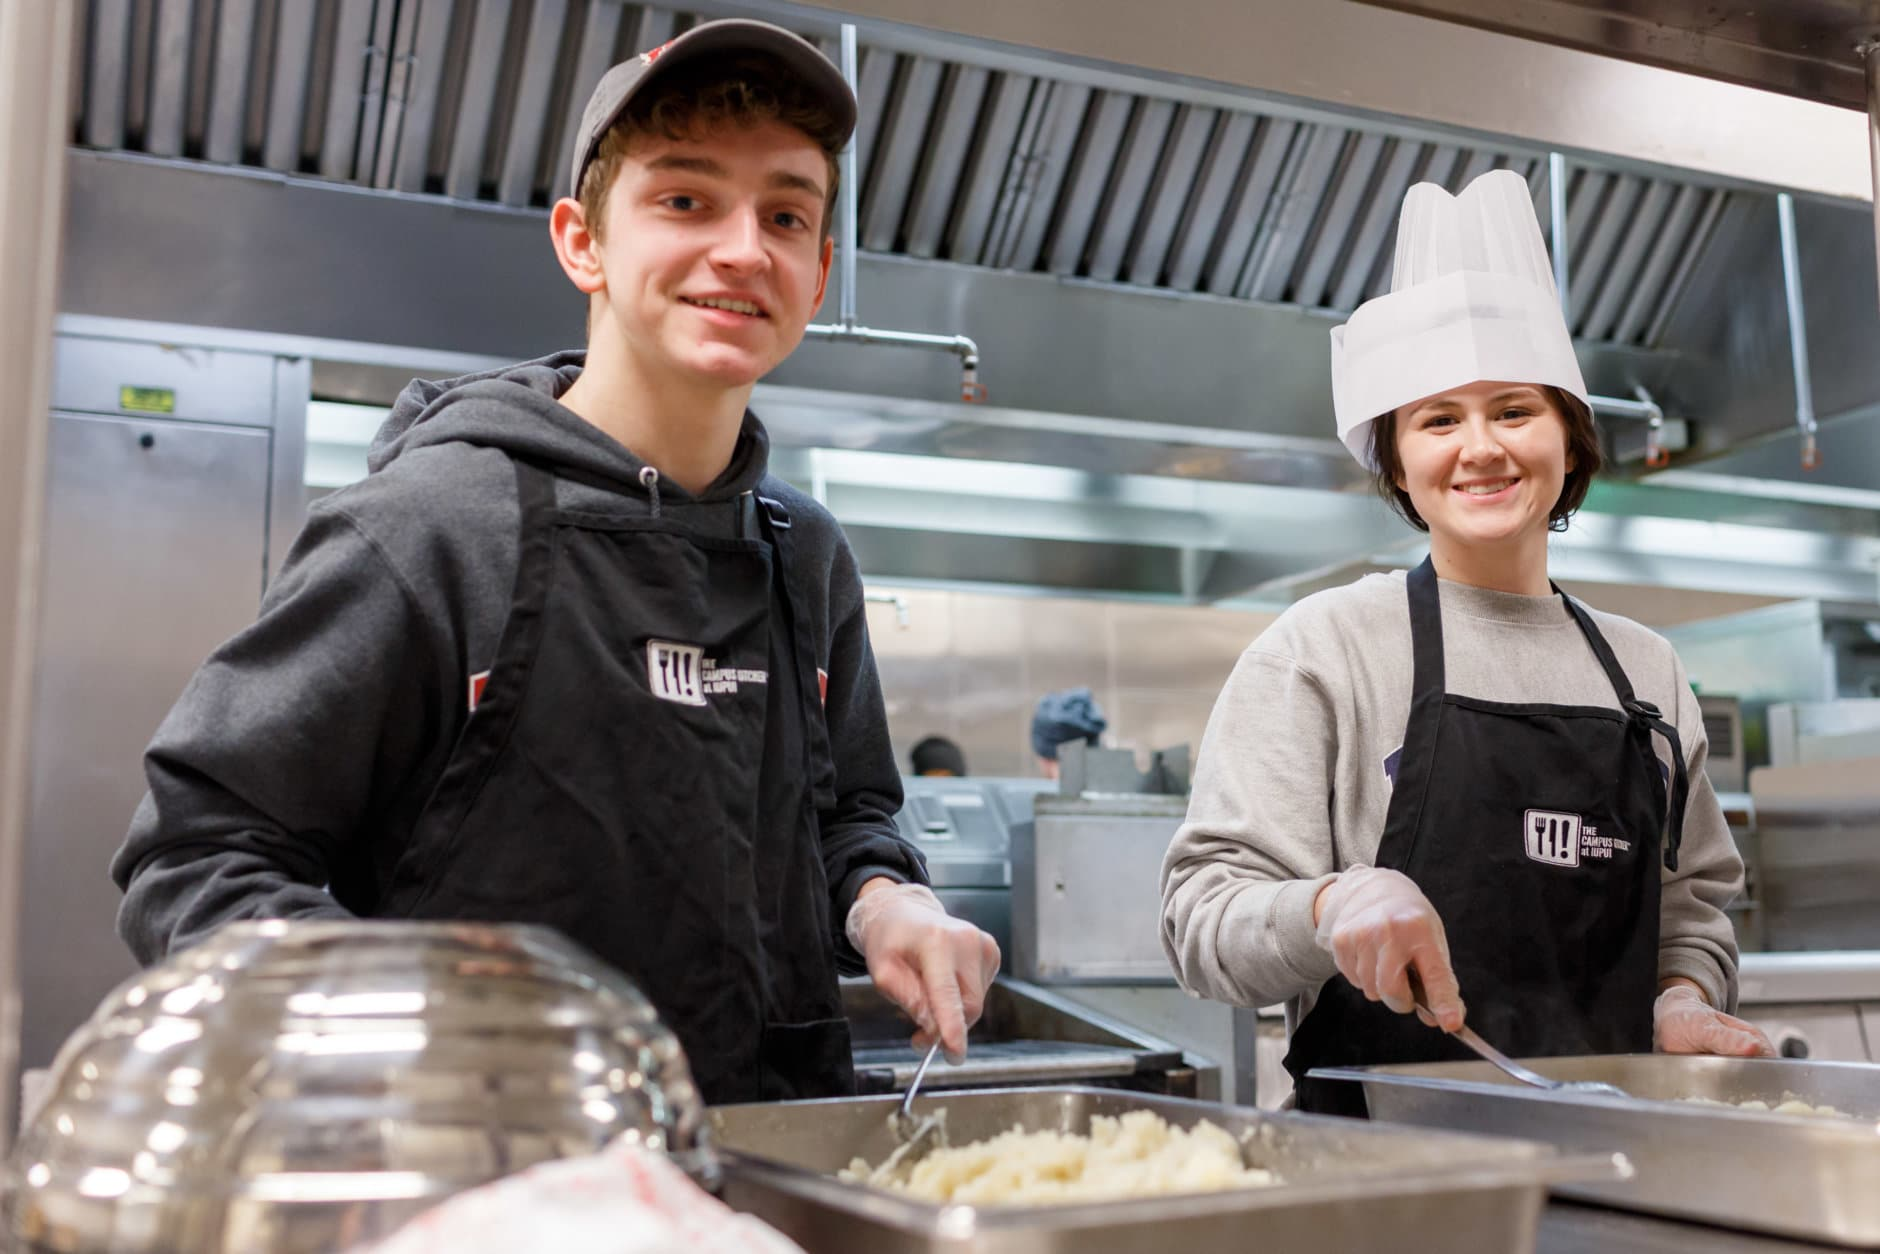 IUPUI students along with staff from Chartwells prepare food for community members on Wednesday February 7, 2018.